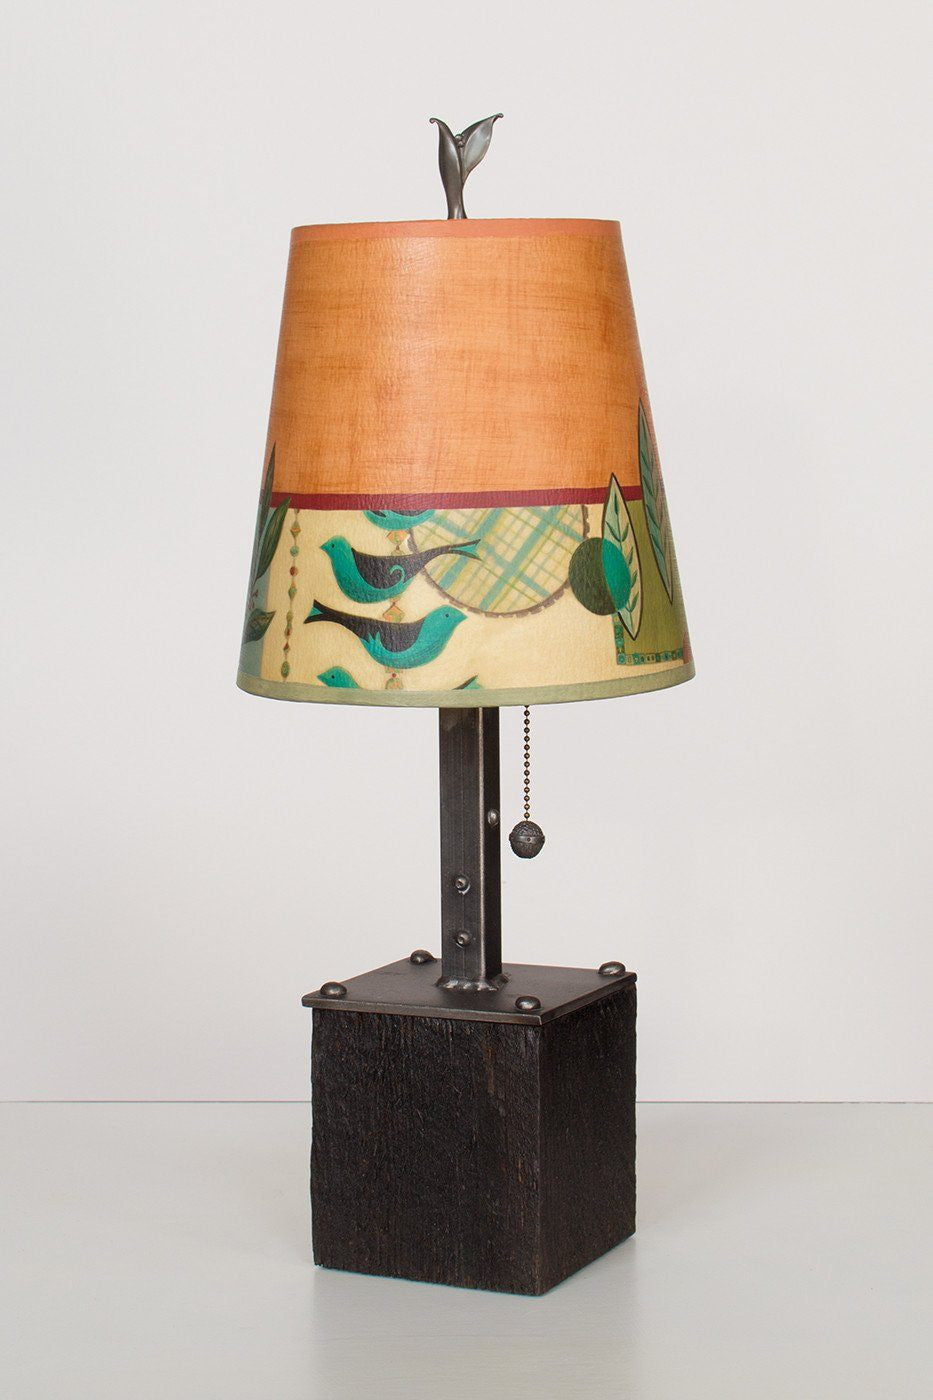 Steel Table Lamp on Reclaimed Wood with Small Drum Shade in New Capri Spice Lit